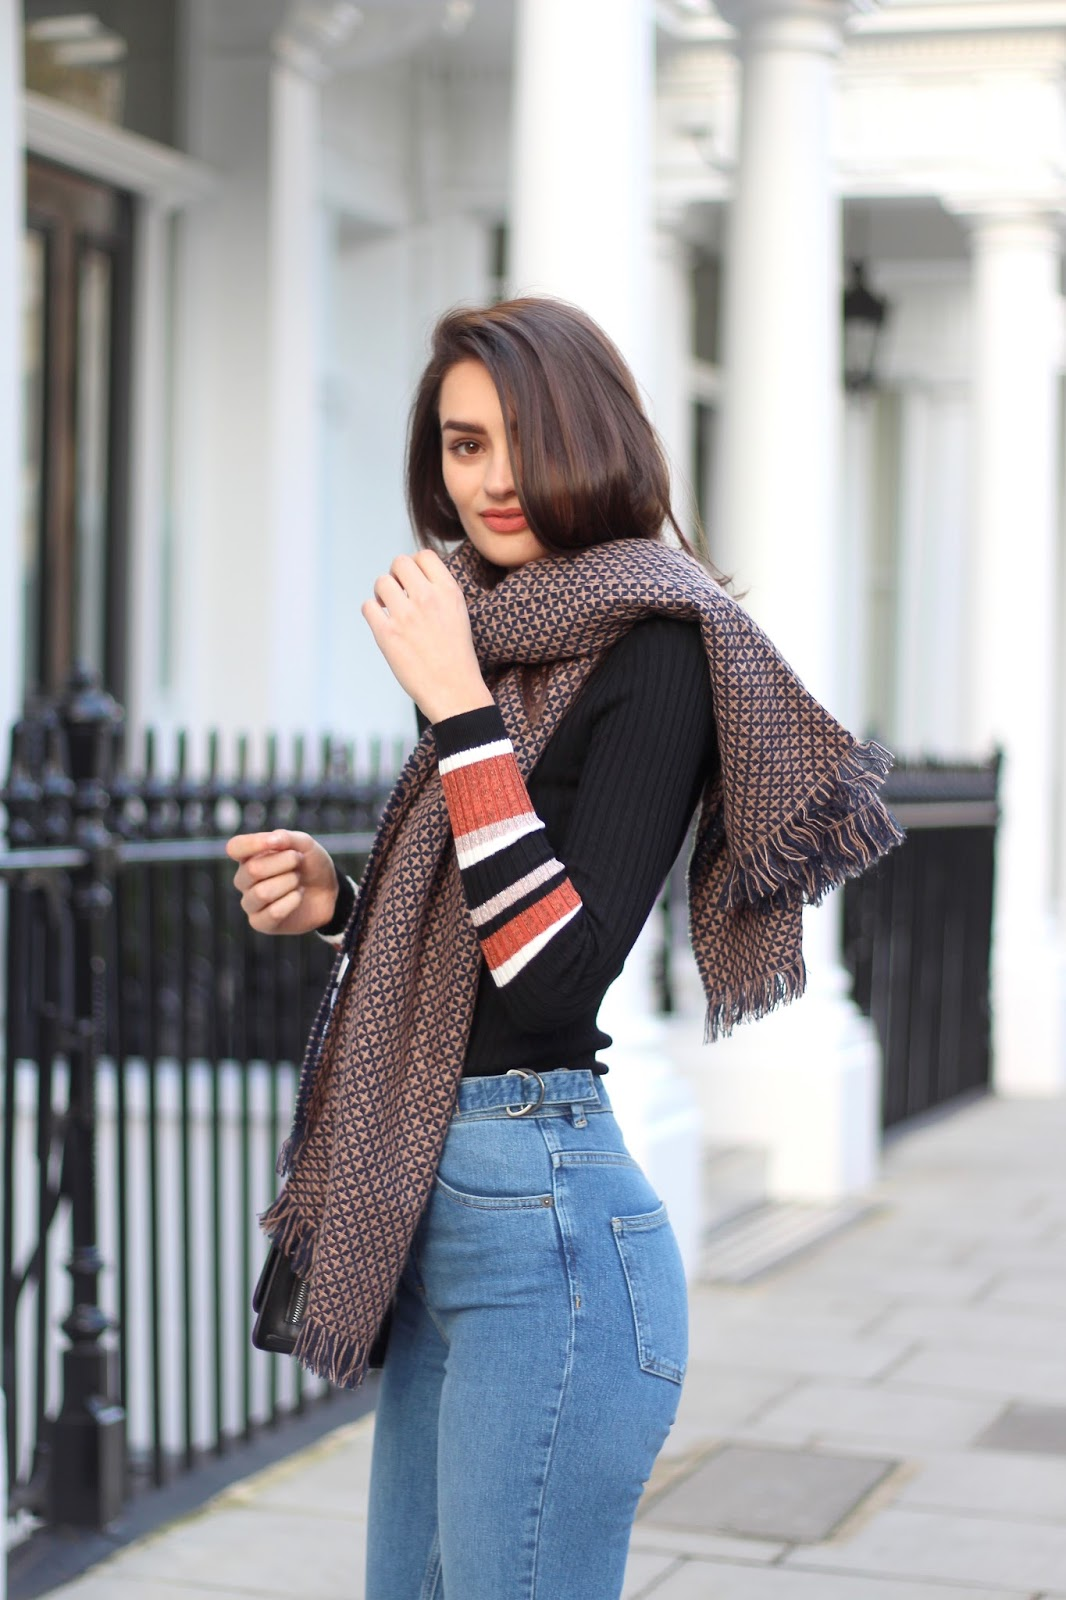 peexo uk street style blogger london